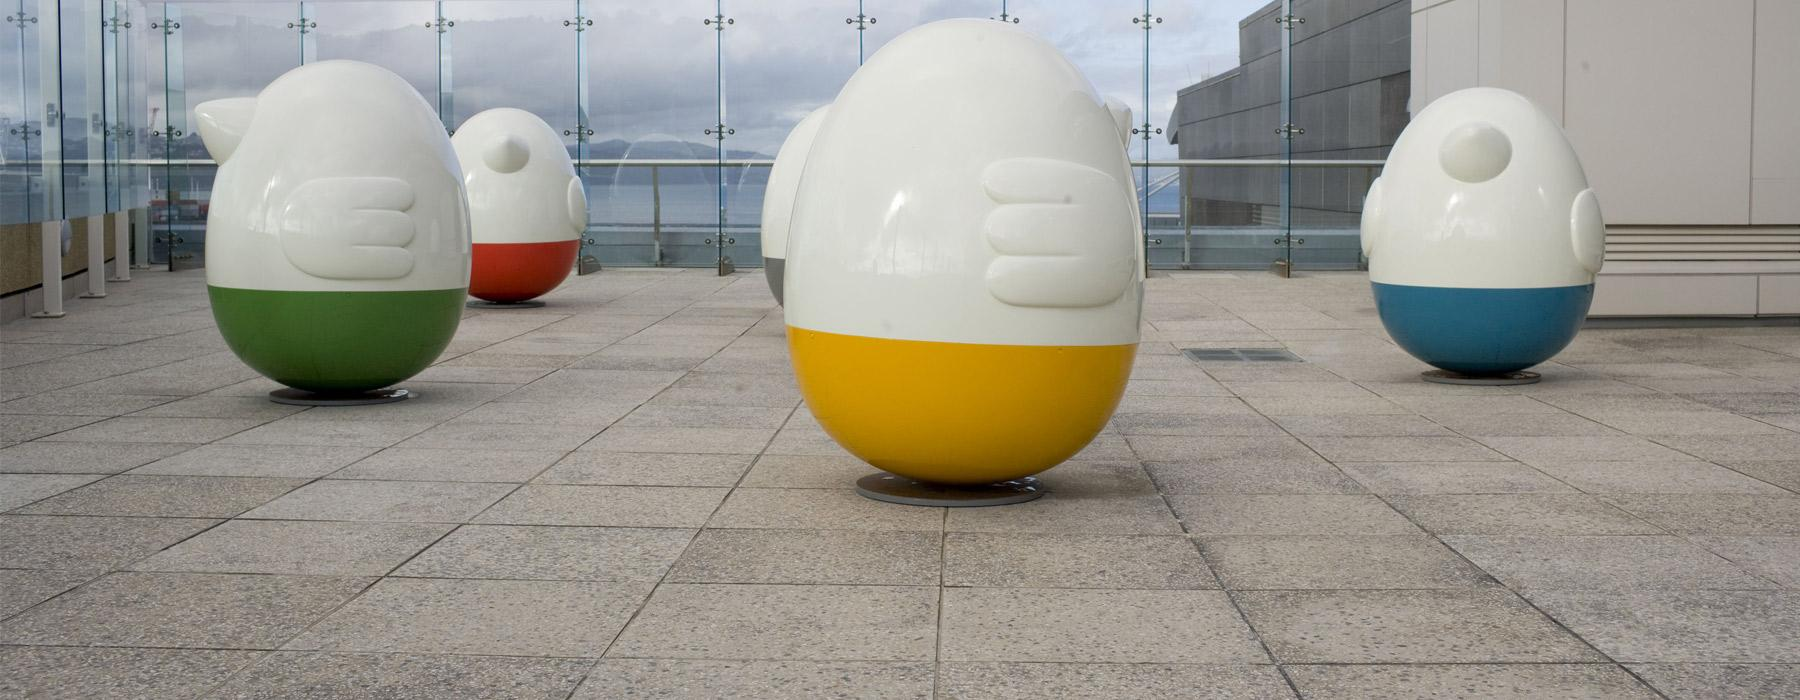 Oddooki, 2008, Auckland, by Seung Yul Oh. Purchased 2009. Te Papa (2009-0025-1/1 to 5)